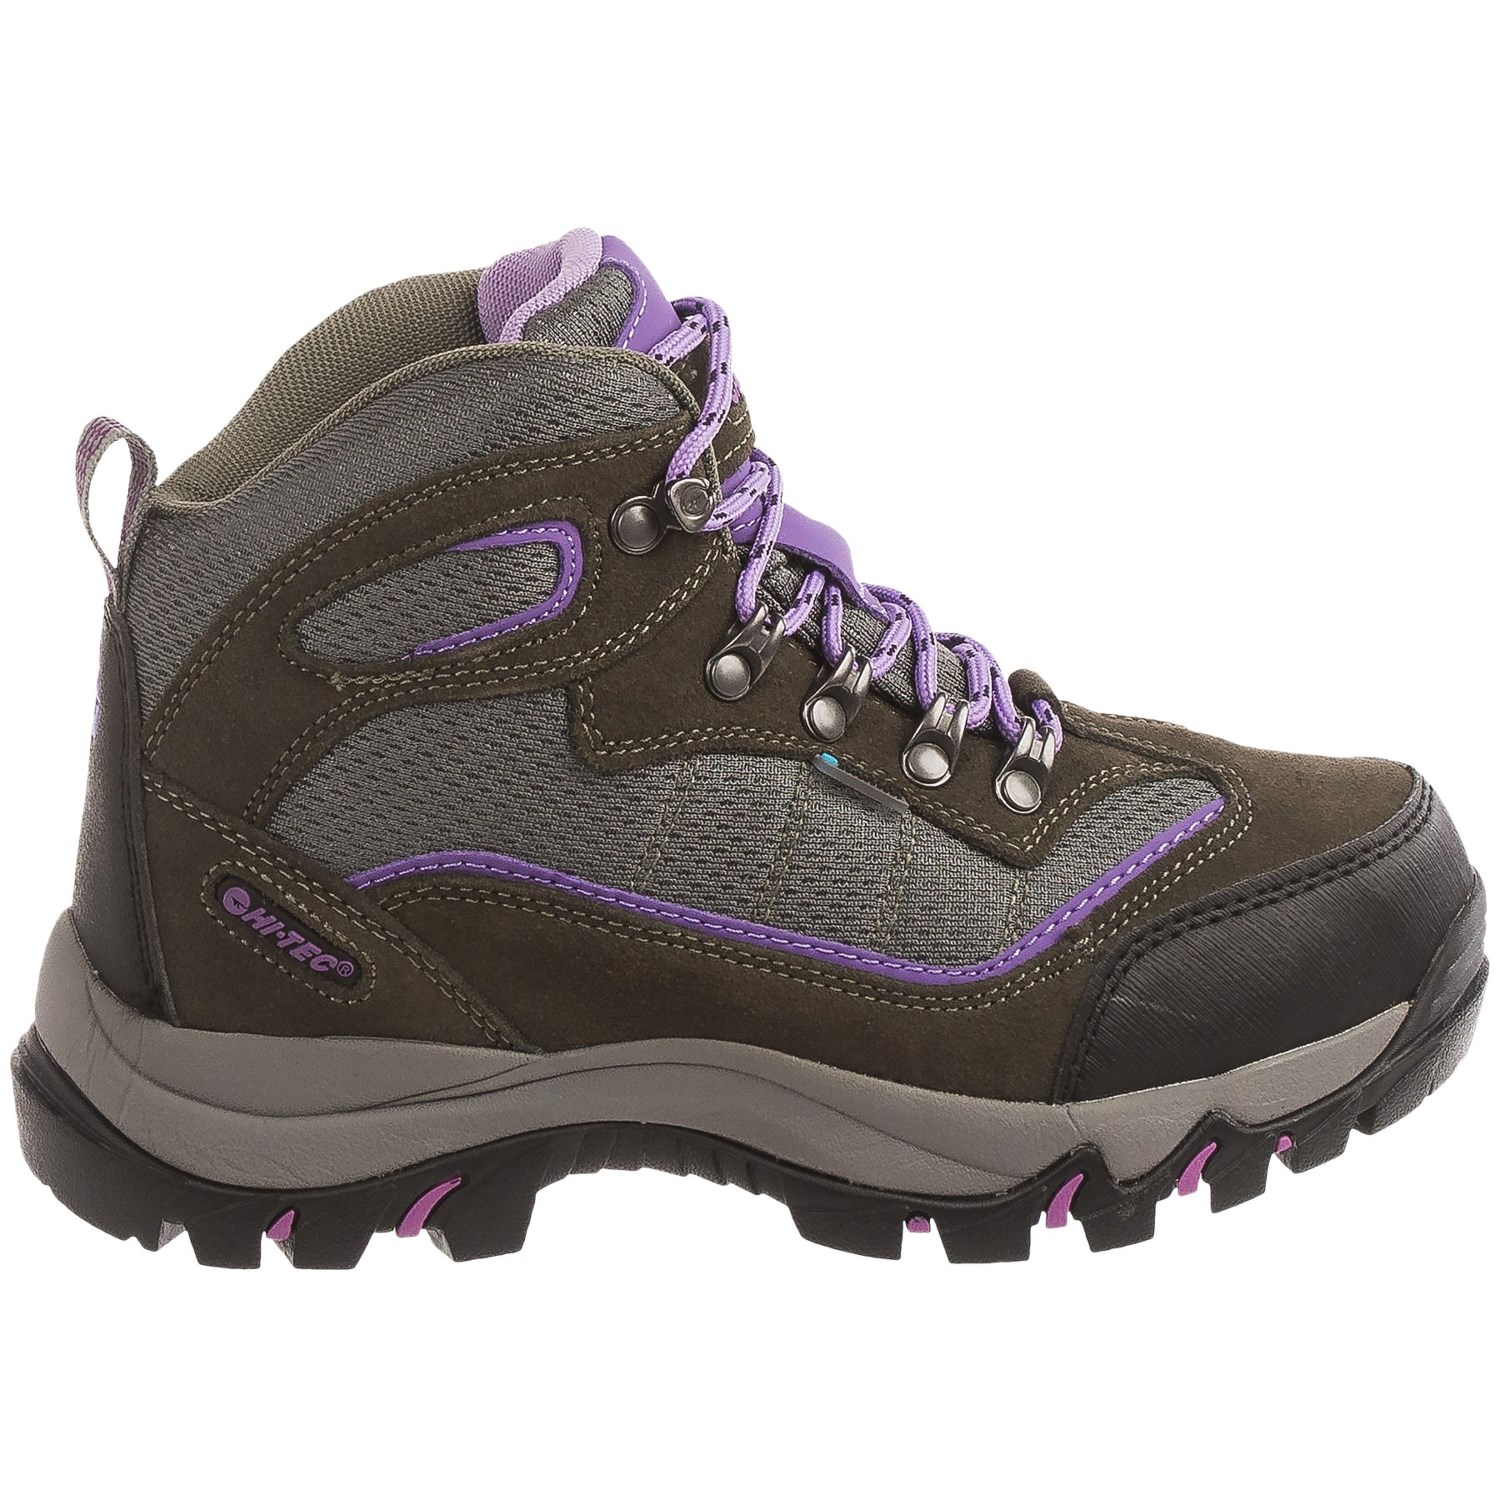 Hi-Tec Skamania Hiking Boots (For Women) - Save 56%